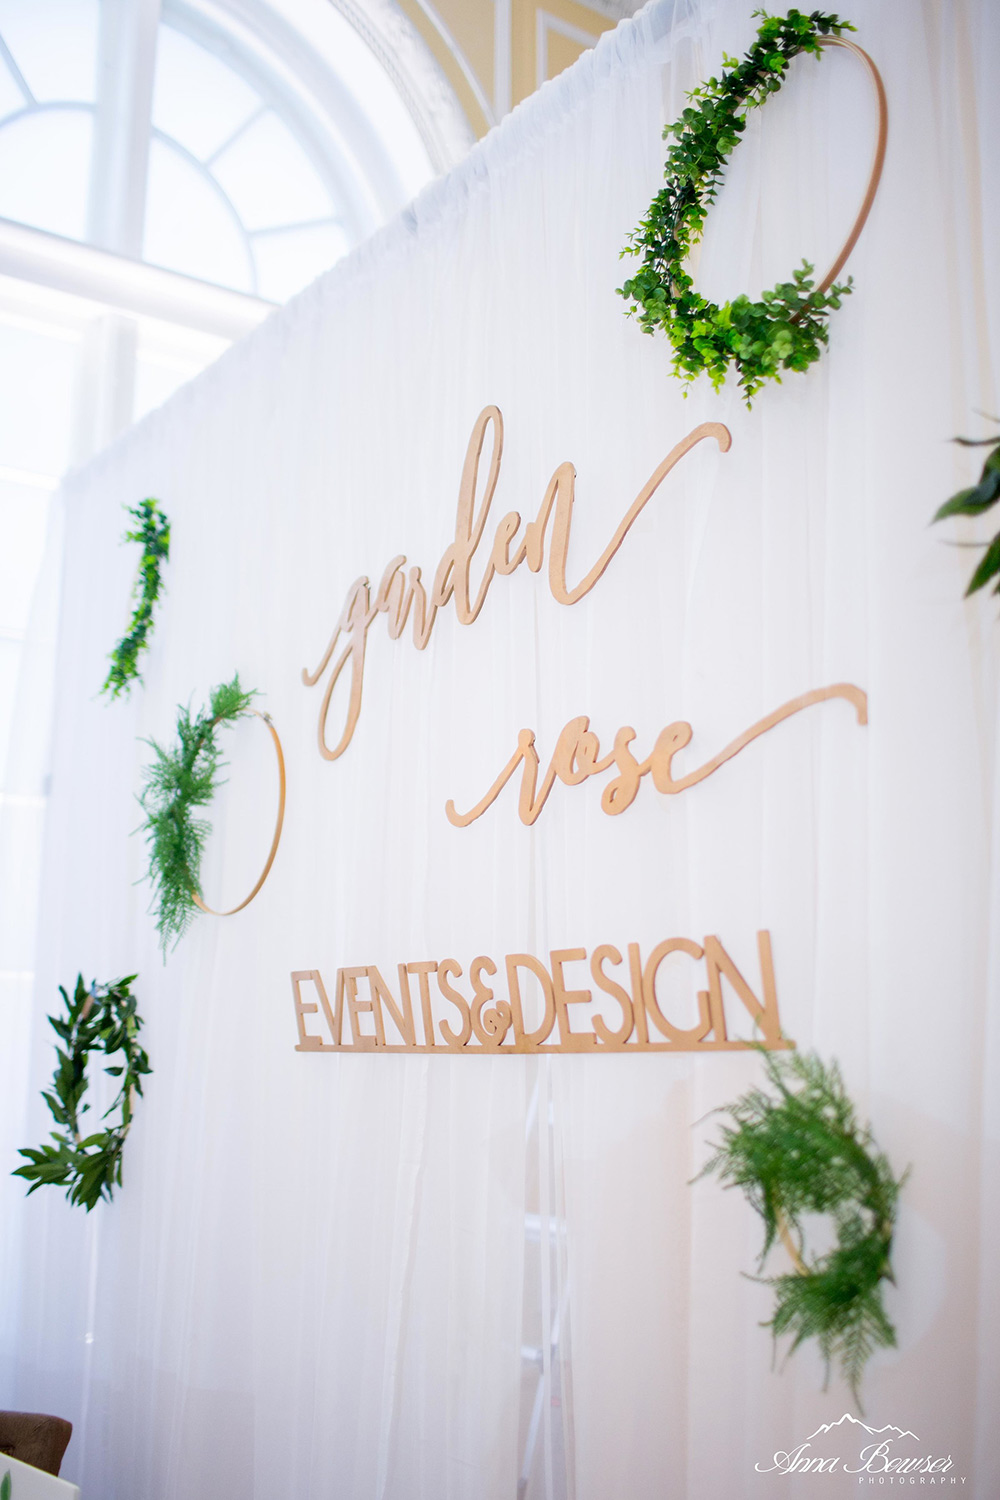 garden rose events backdrop vertical .jpg